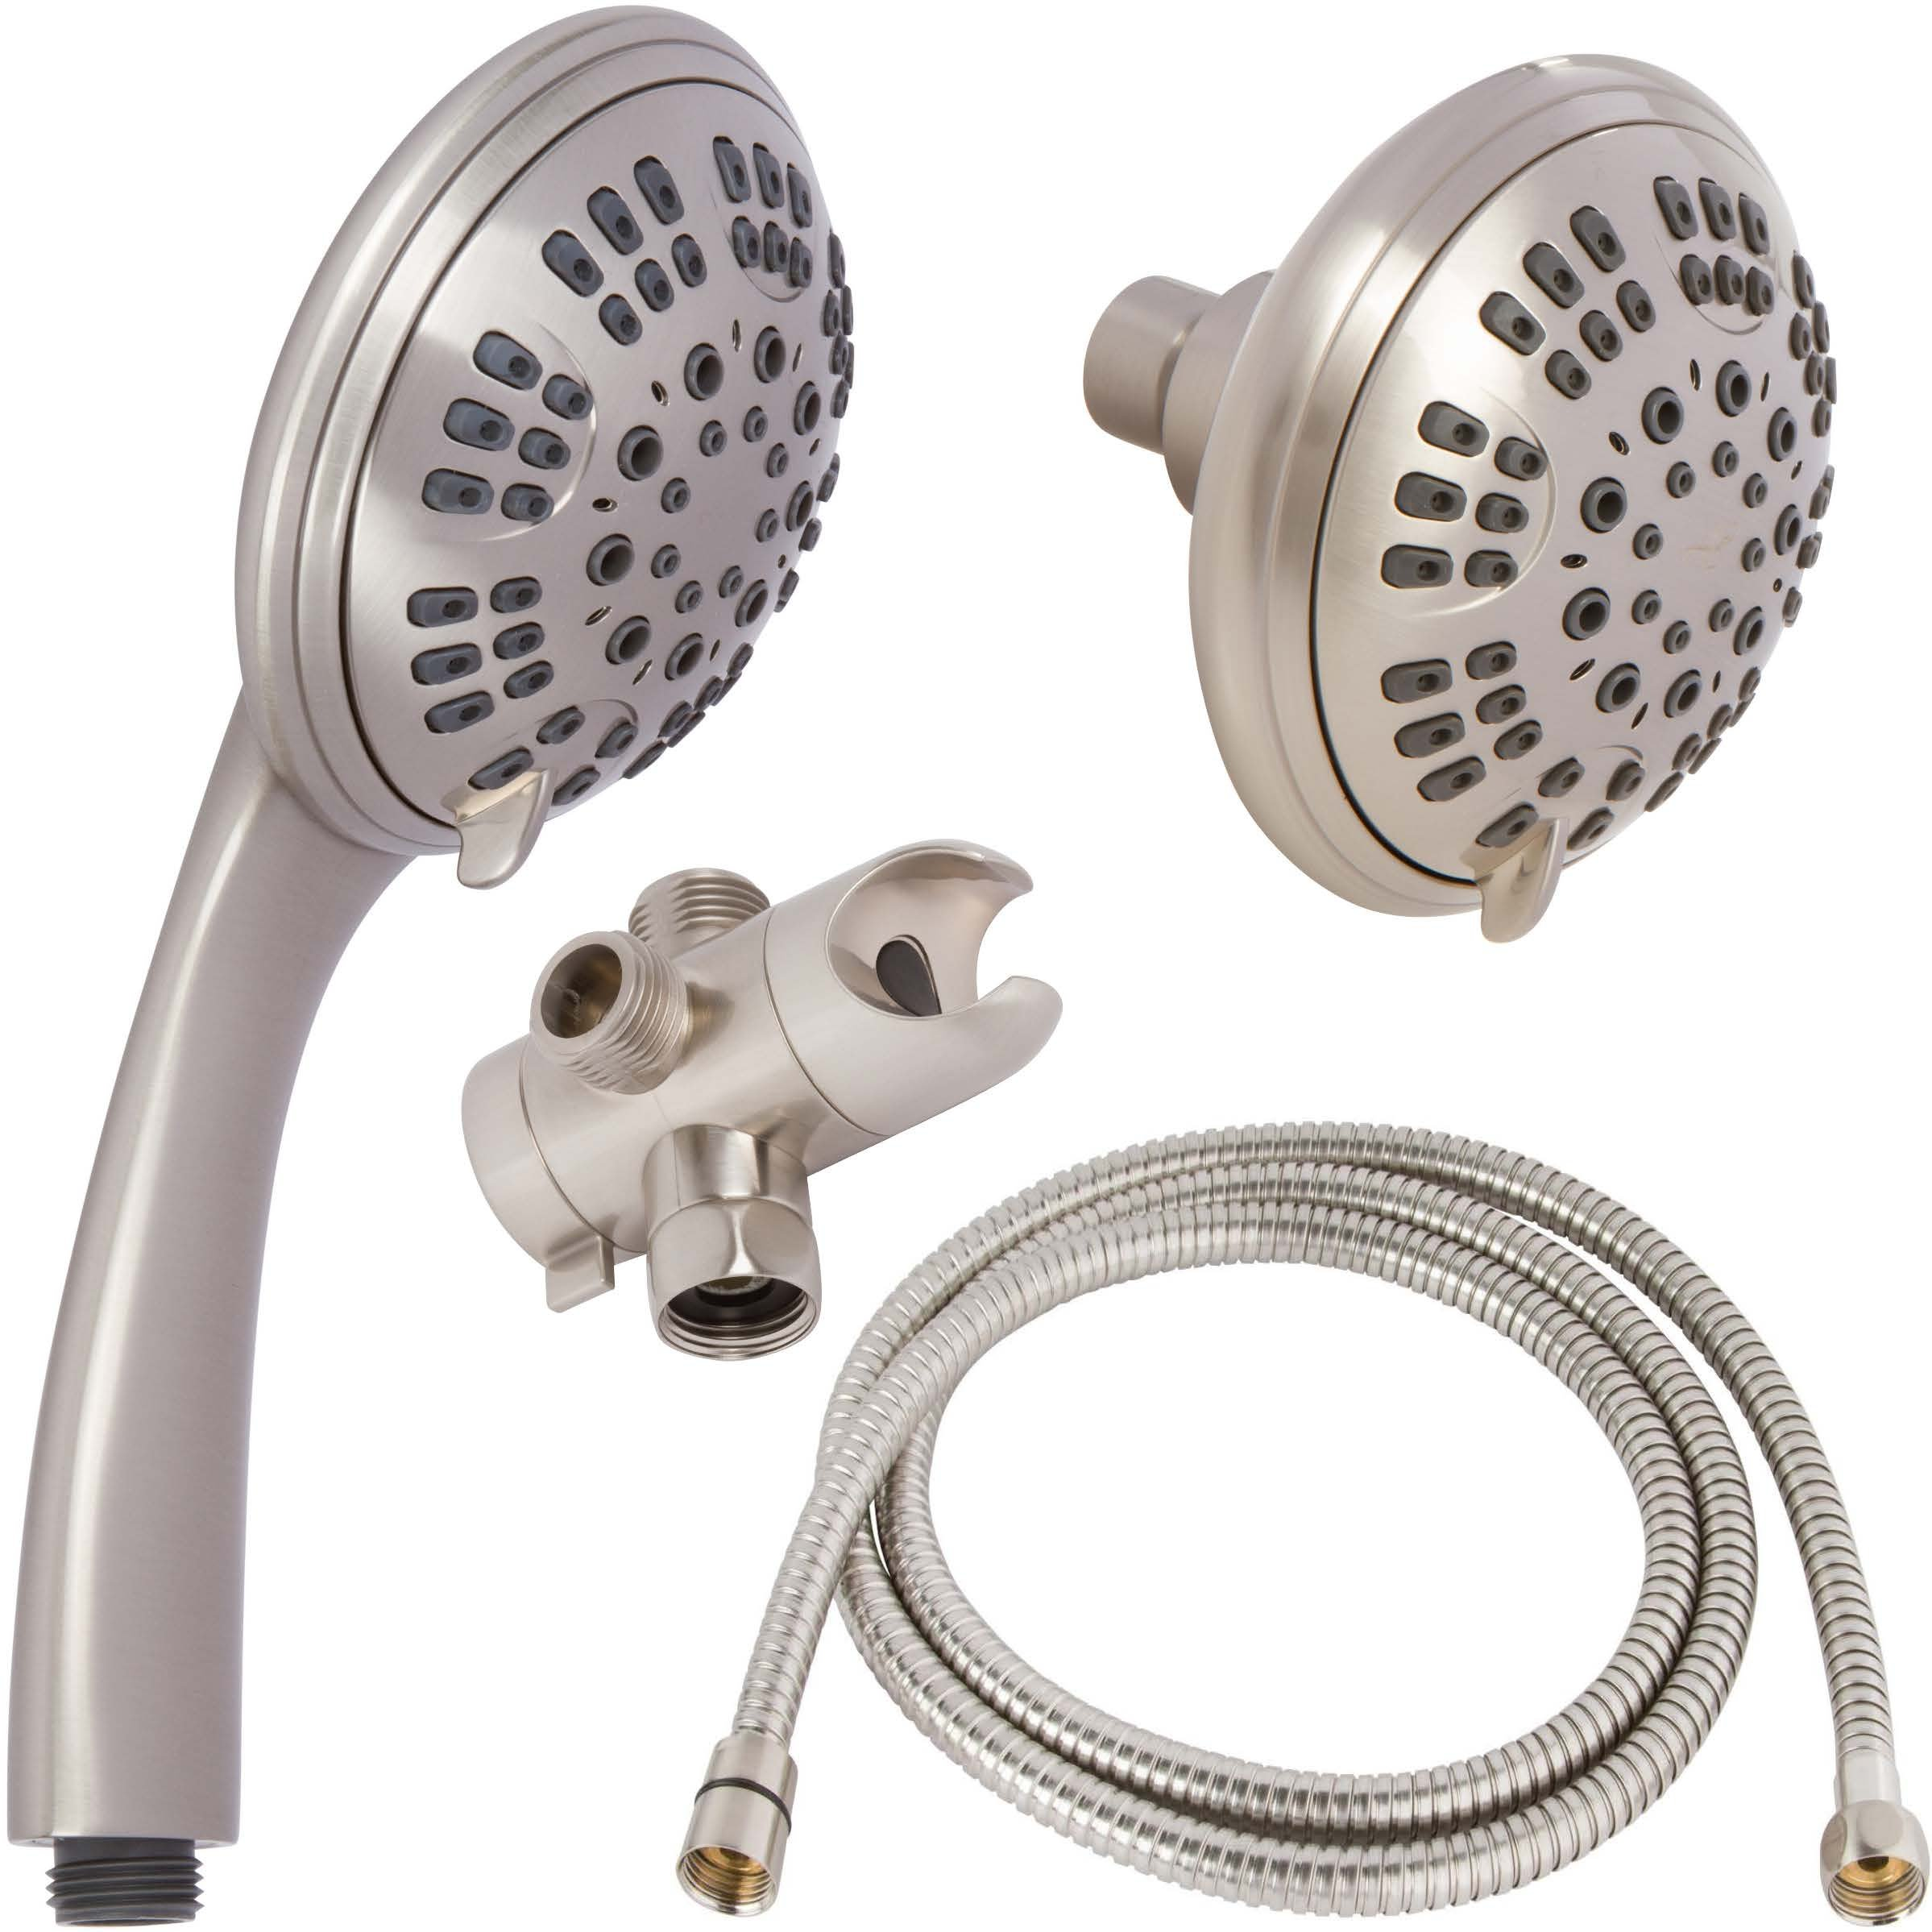 6 Function Dual Shower Head Combo - High Pressure, Adjustable Handheld & Fixed Showerheads With Hose & Diverter And Double Removable Rainfall Spray Heads - Brushed Nickel